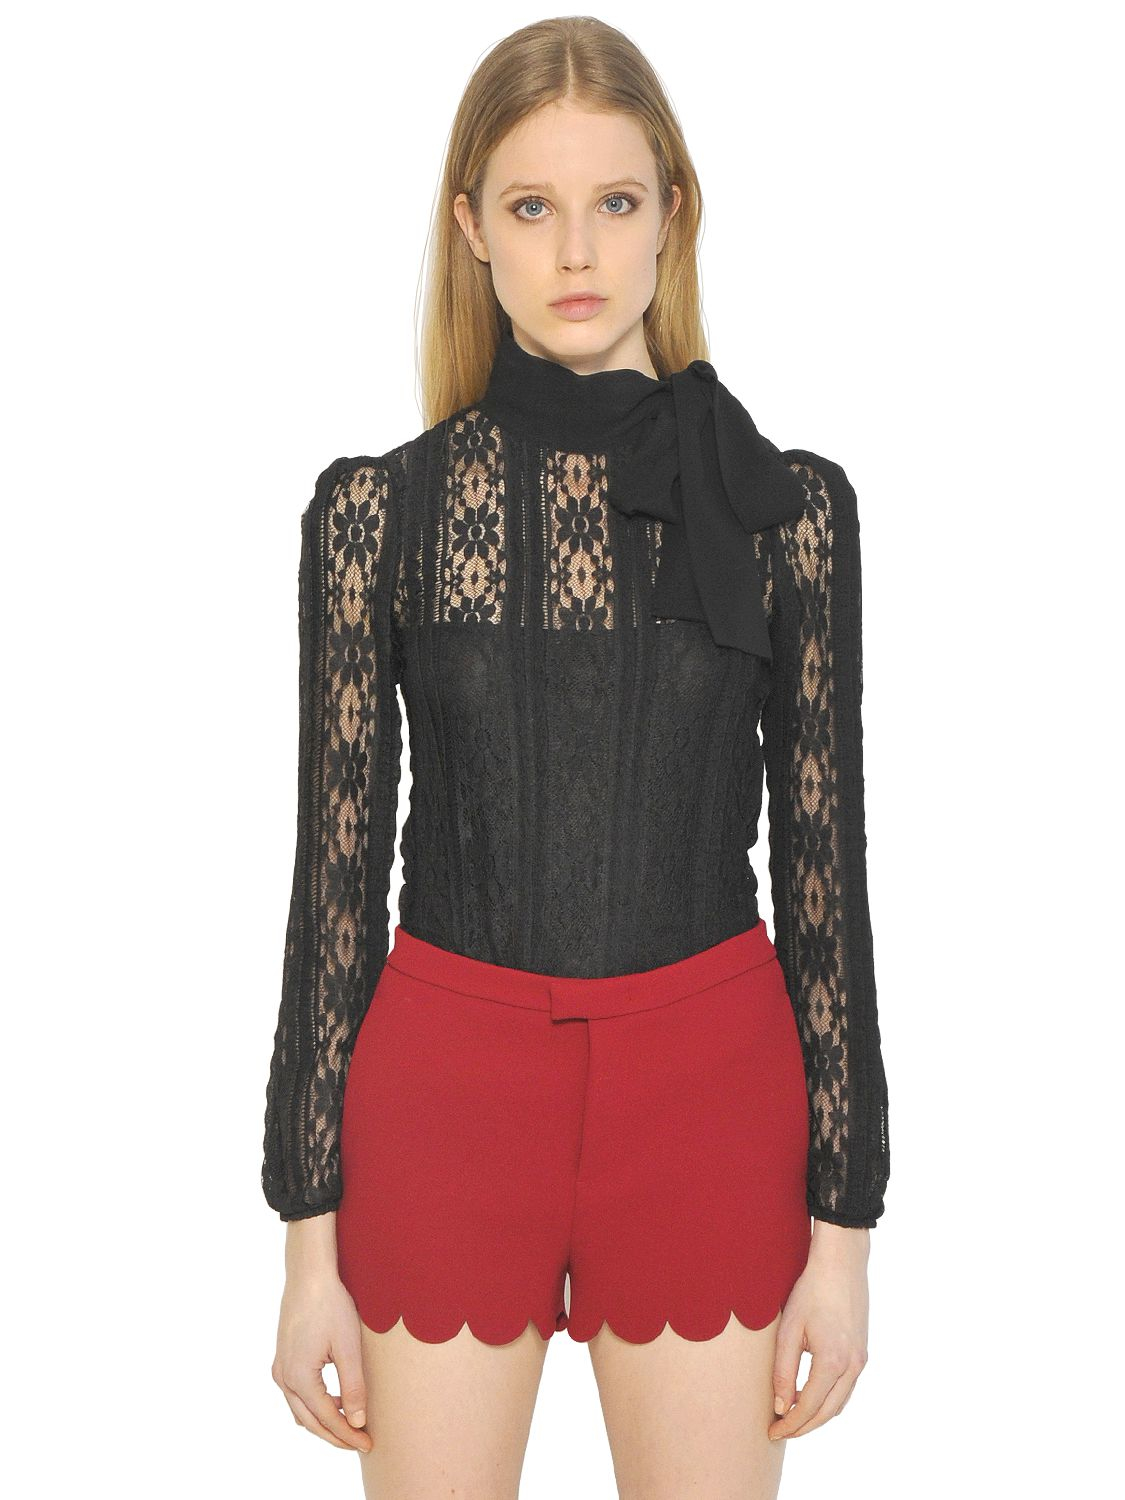 Lyst - Red valentino Techno Jersey Lace Top in Black